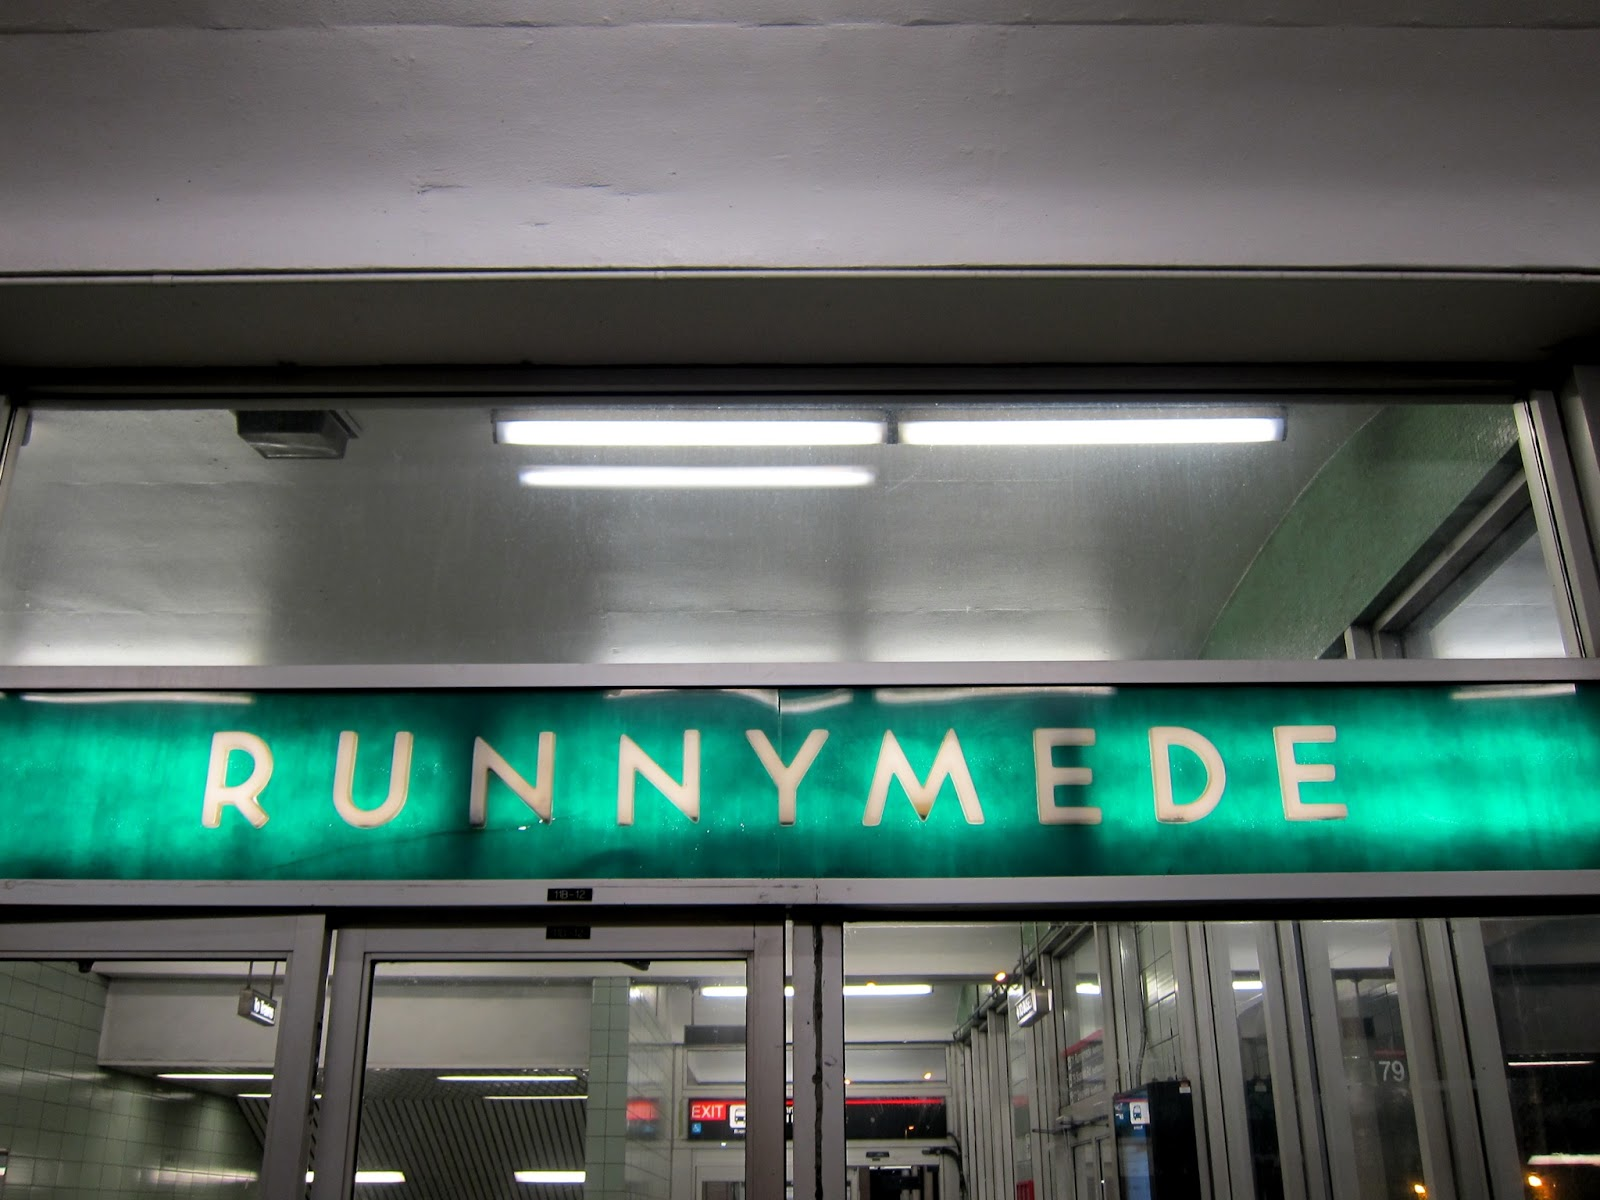 Entrance signage for Runnymede station (Kennedy Avenue end)